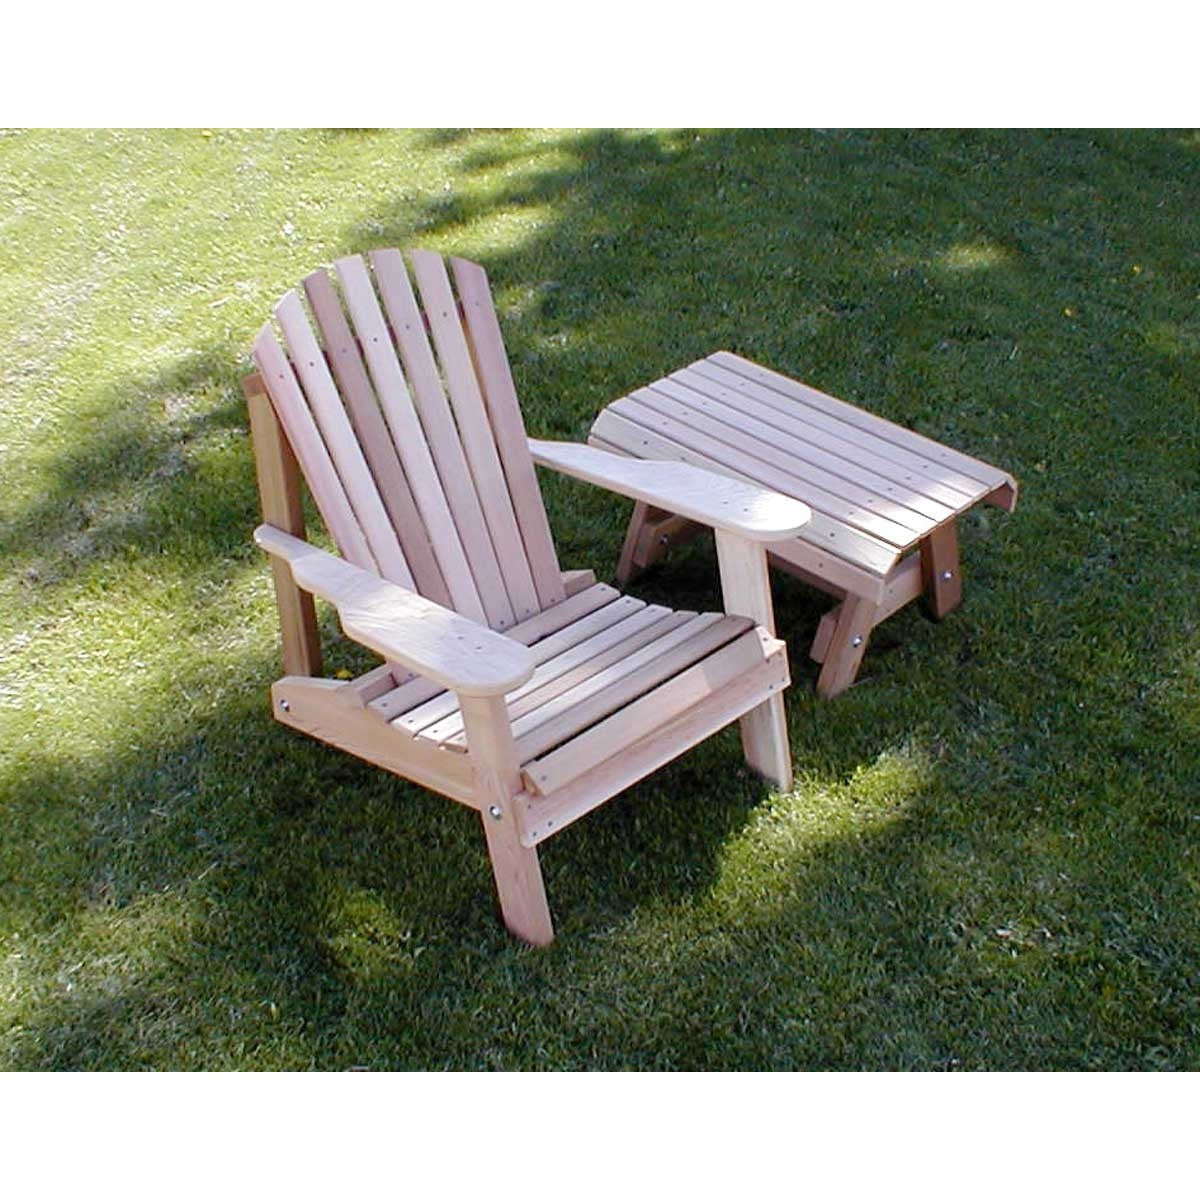 Creekvine Designs Chair & Table Set - Swings and More